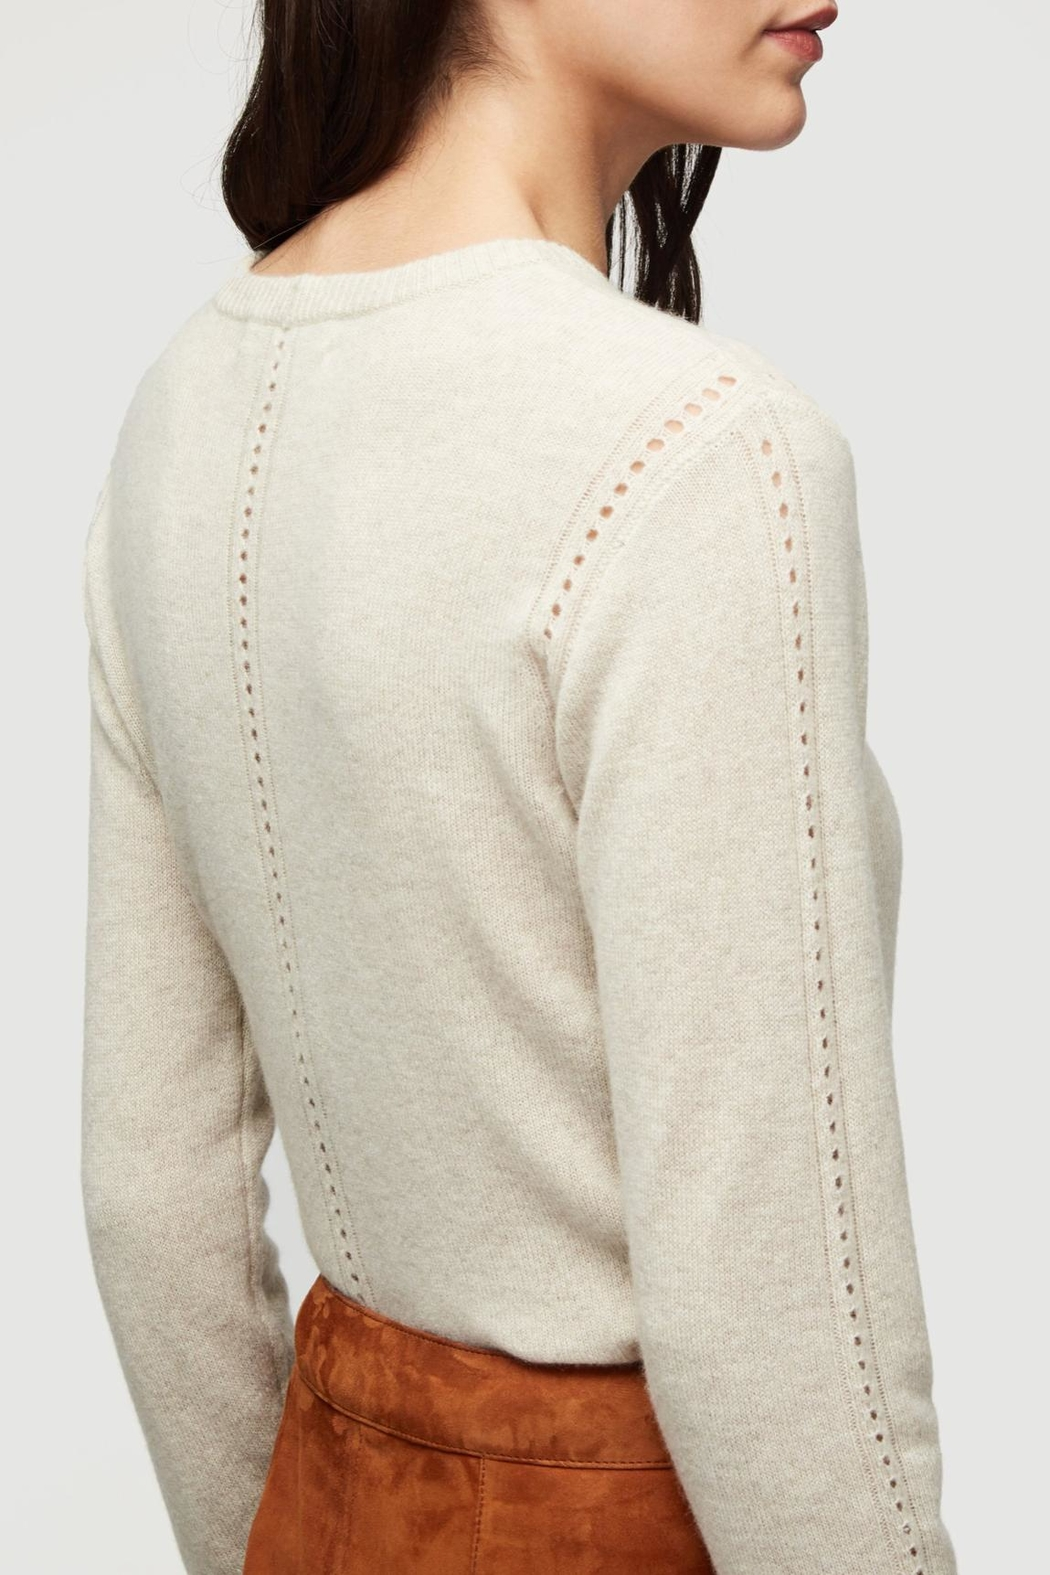 frame Oatmeal Cashmere Sweater - Back Cropped Image